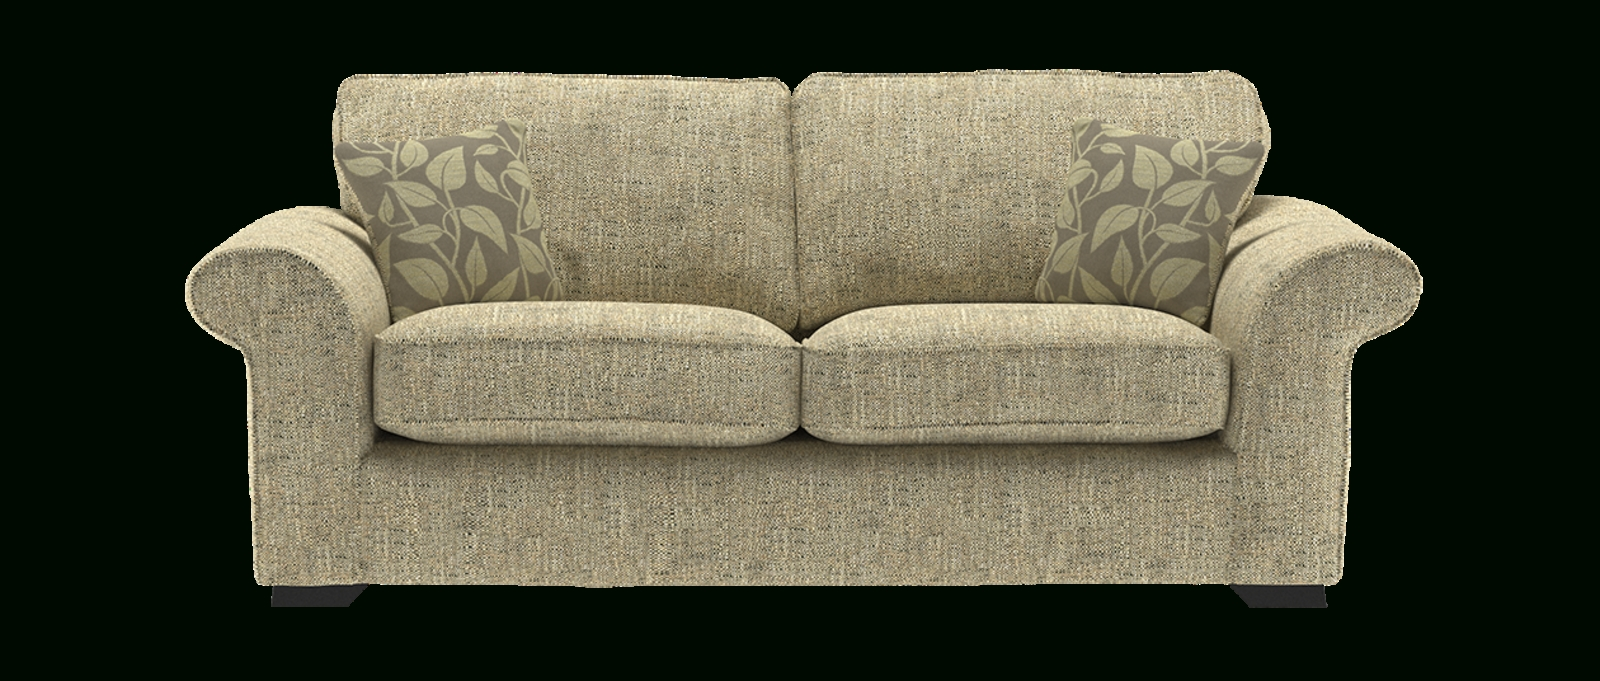 Ashford Sofa With Concept Photo 25028 | Kengire Regarding Ashford Sofas (Image 8 of 20)